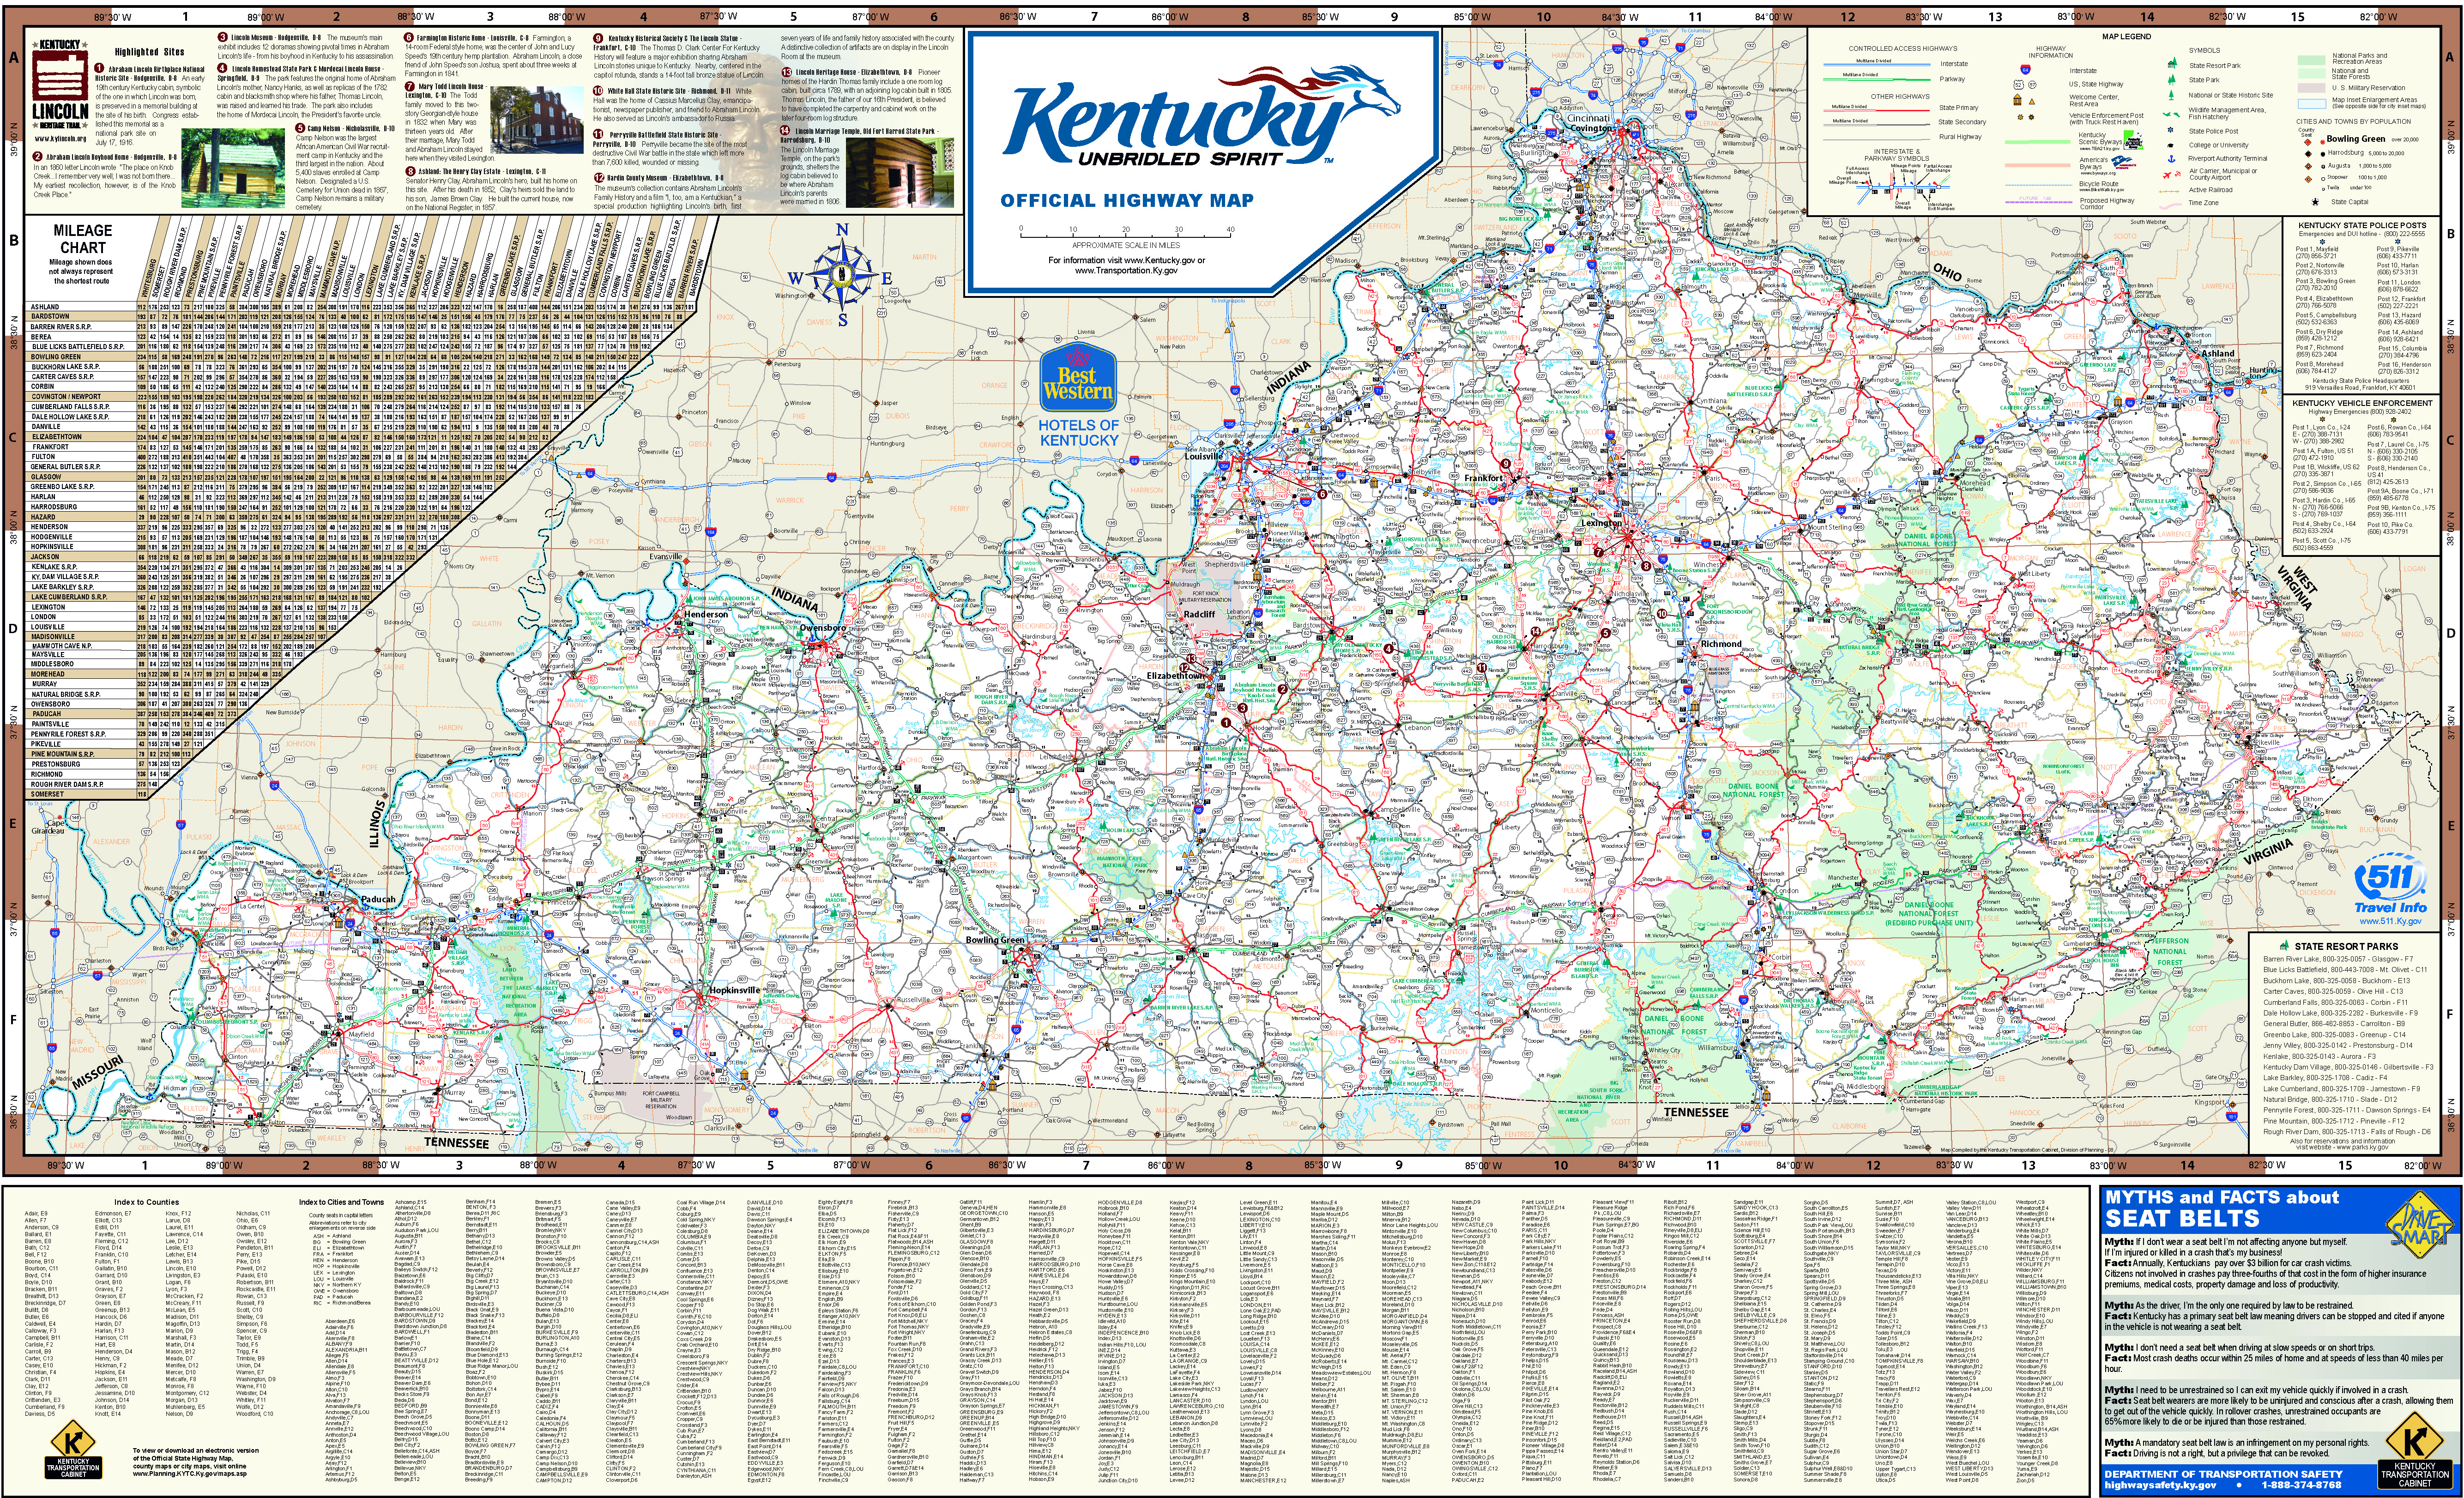 Large Detailed Highways Map Of Kentucky State With All Cities And - Map of kentucky state